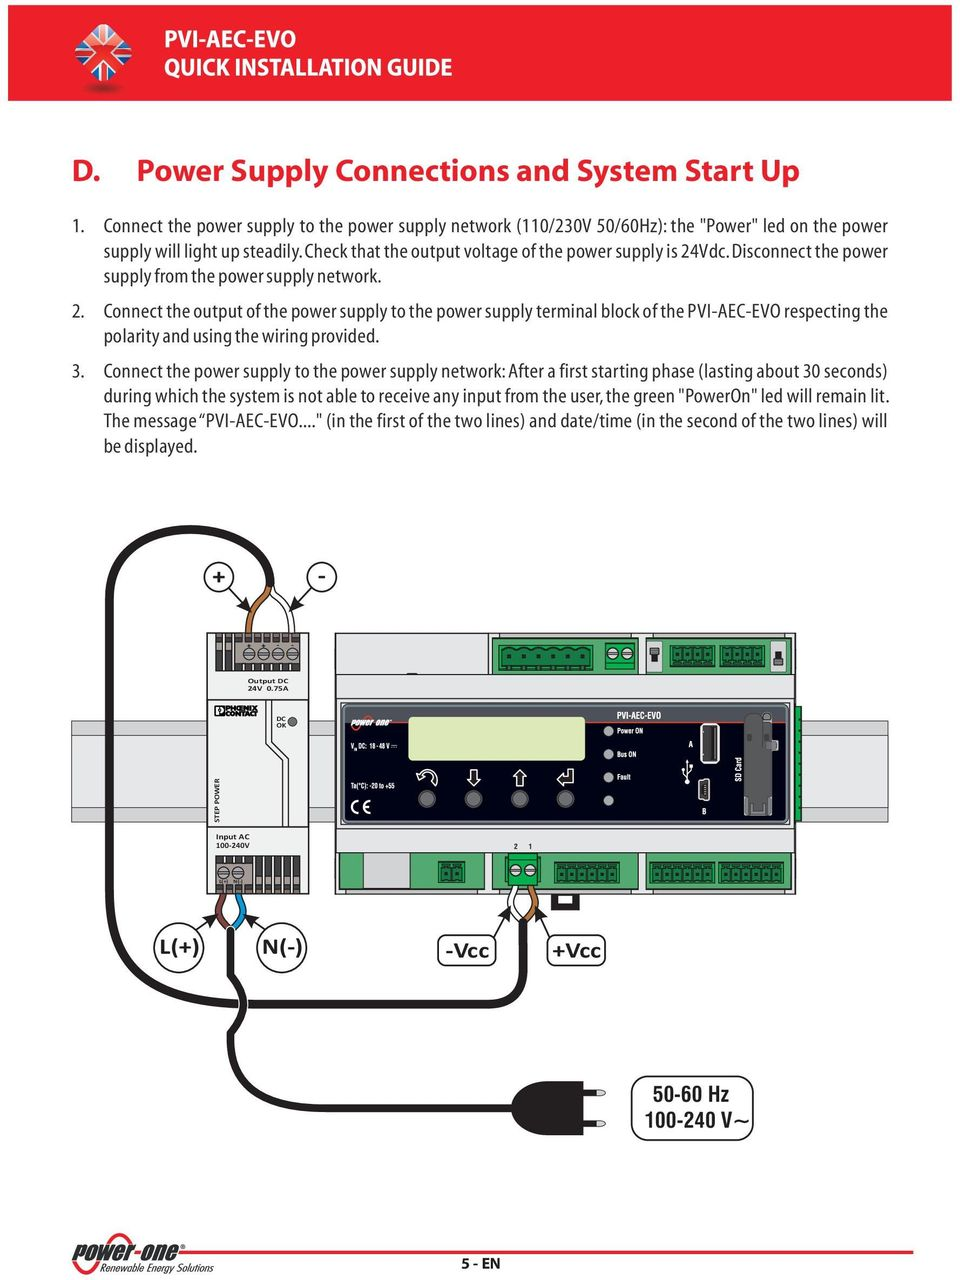 Vdc.Disconnect the power supply from the power supply network. 2.